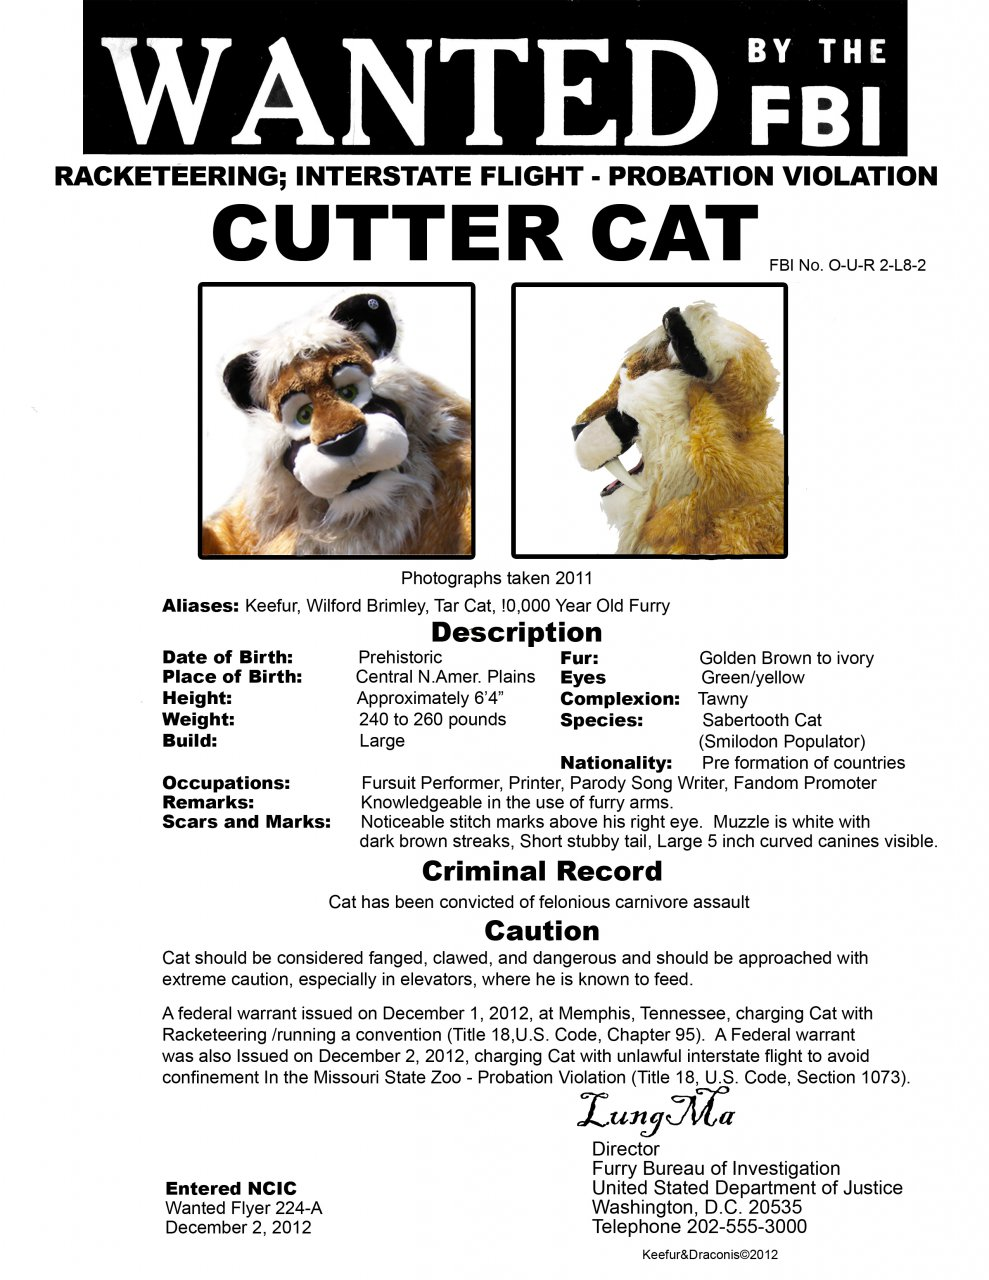 Wanted by the FBI (Furry Bureau of Investigation)